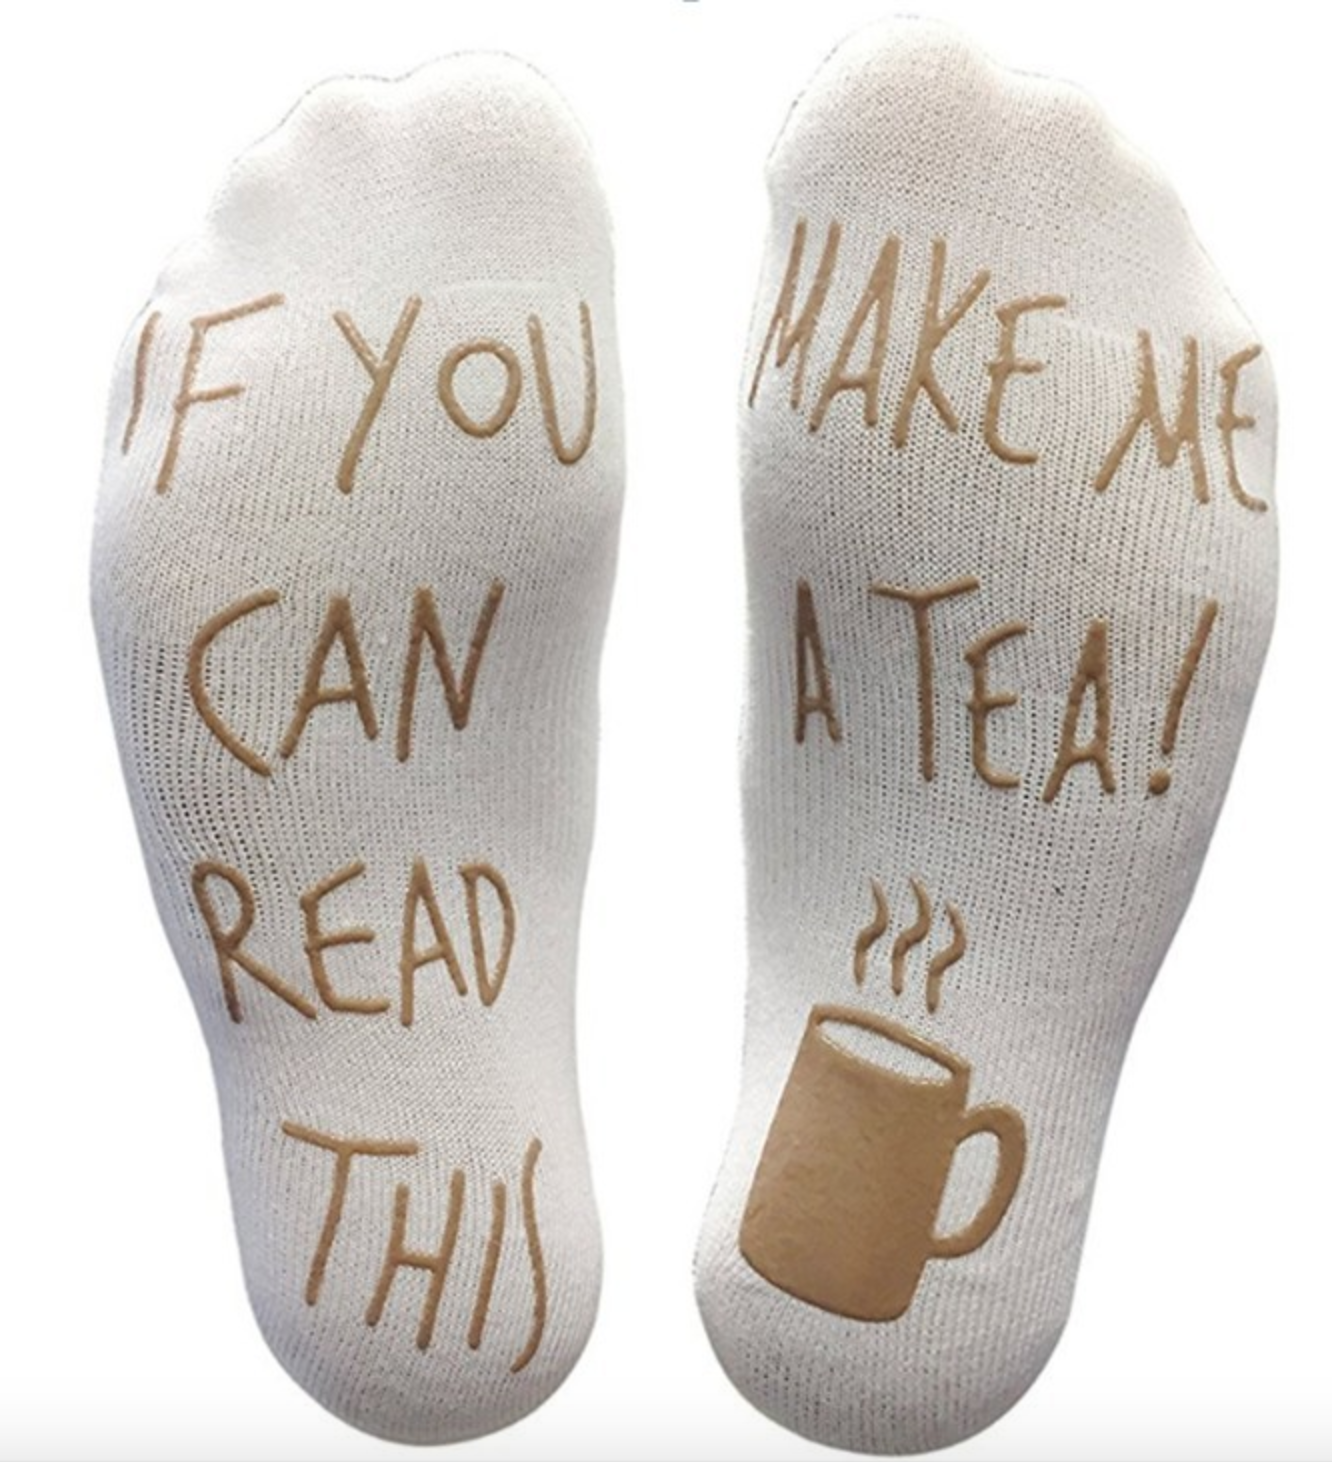 Women's Funny Socks 'If You Can Read This Make Me Tea' by  Wrap My Phone